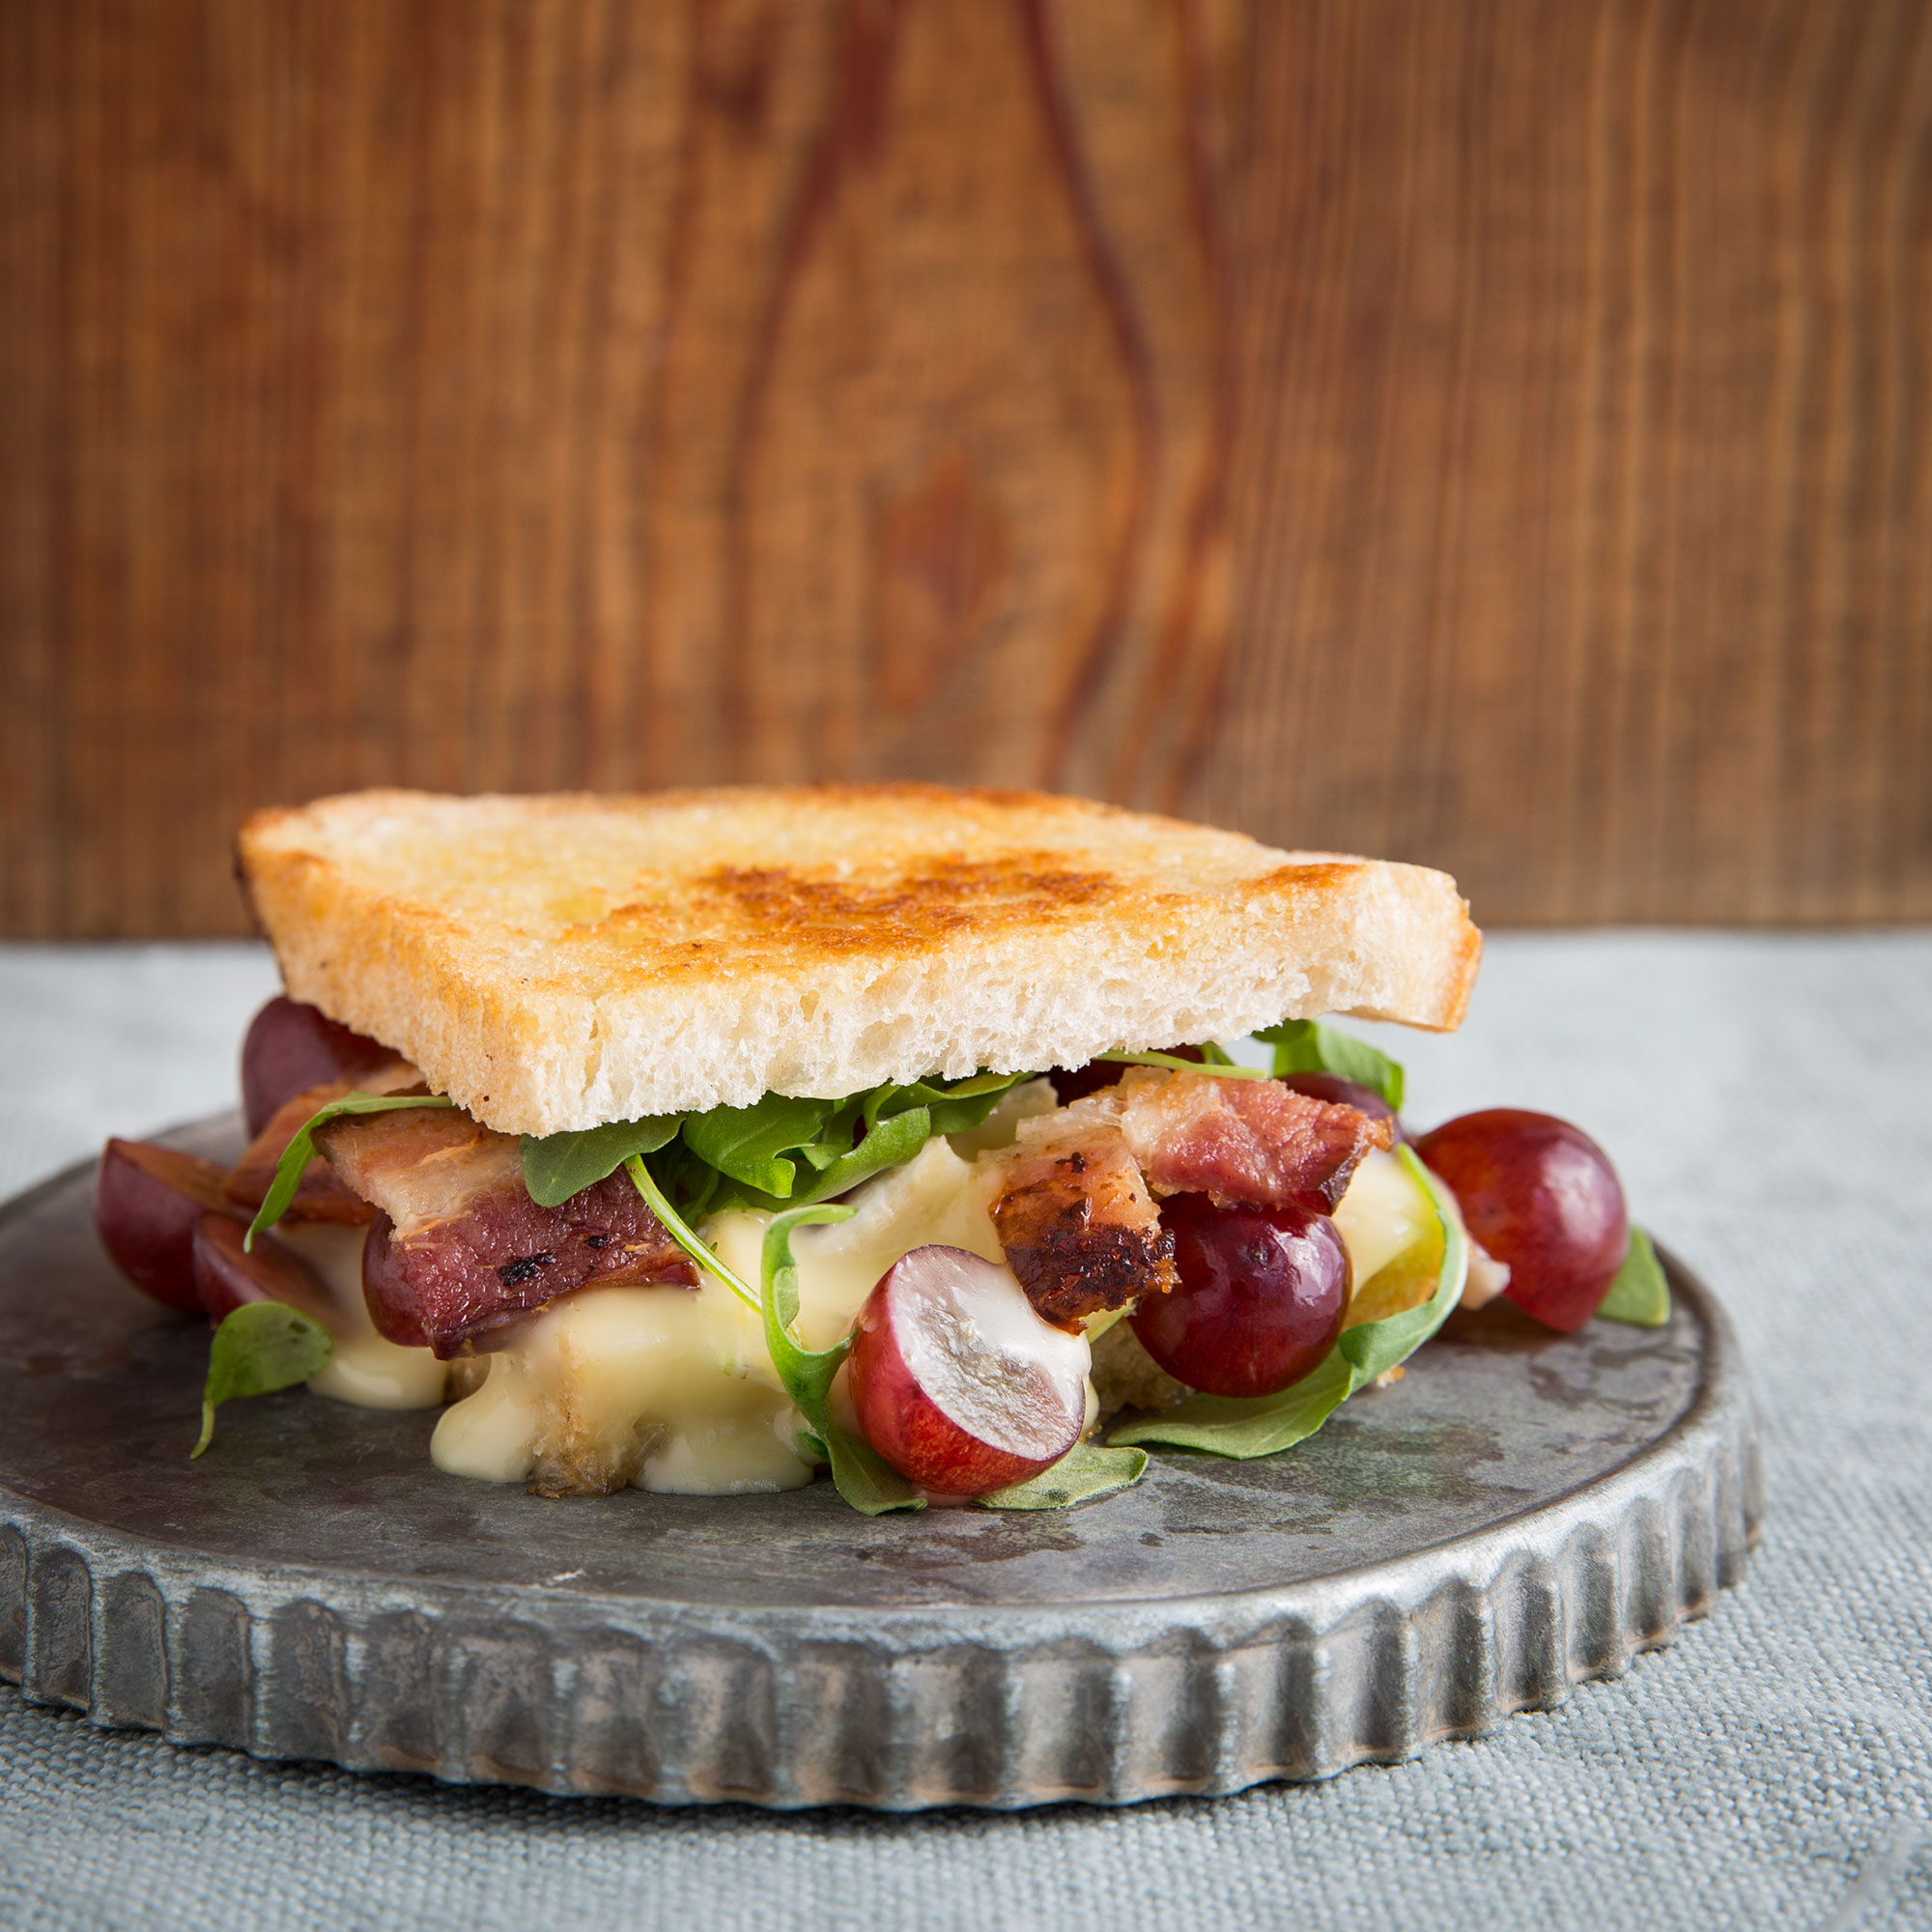 BRIE-AND-CHILEAN-GRAPES-GRILLED-CHEESE-SANDWICH-.jpg